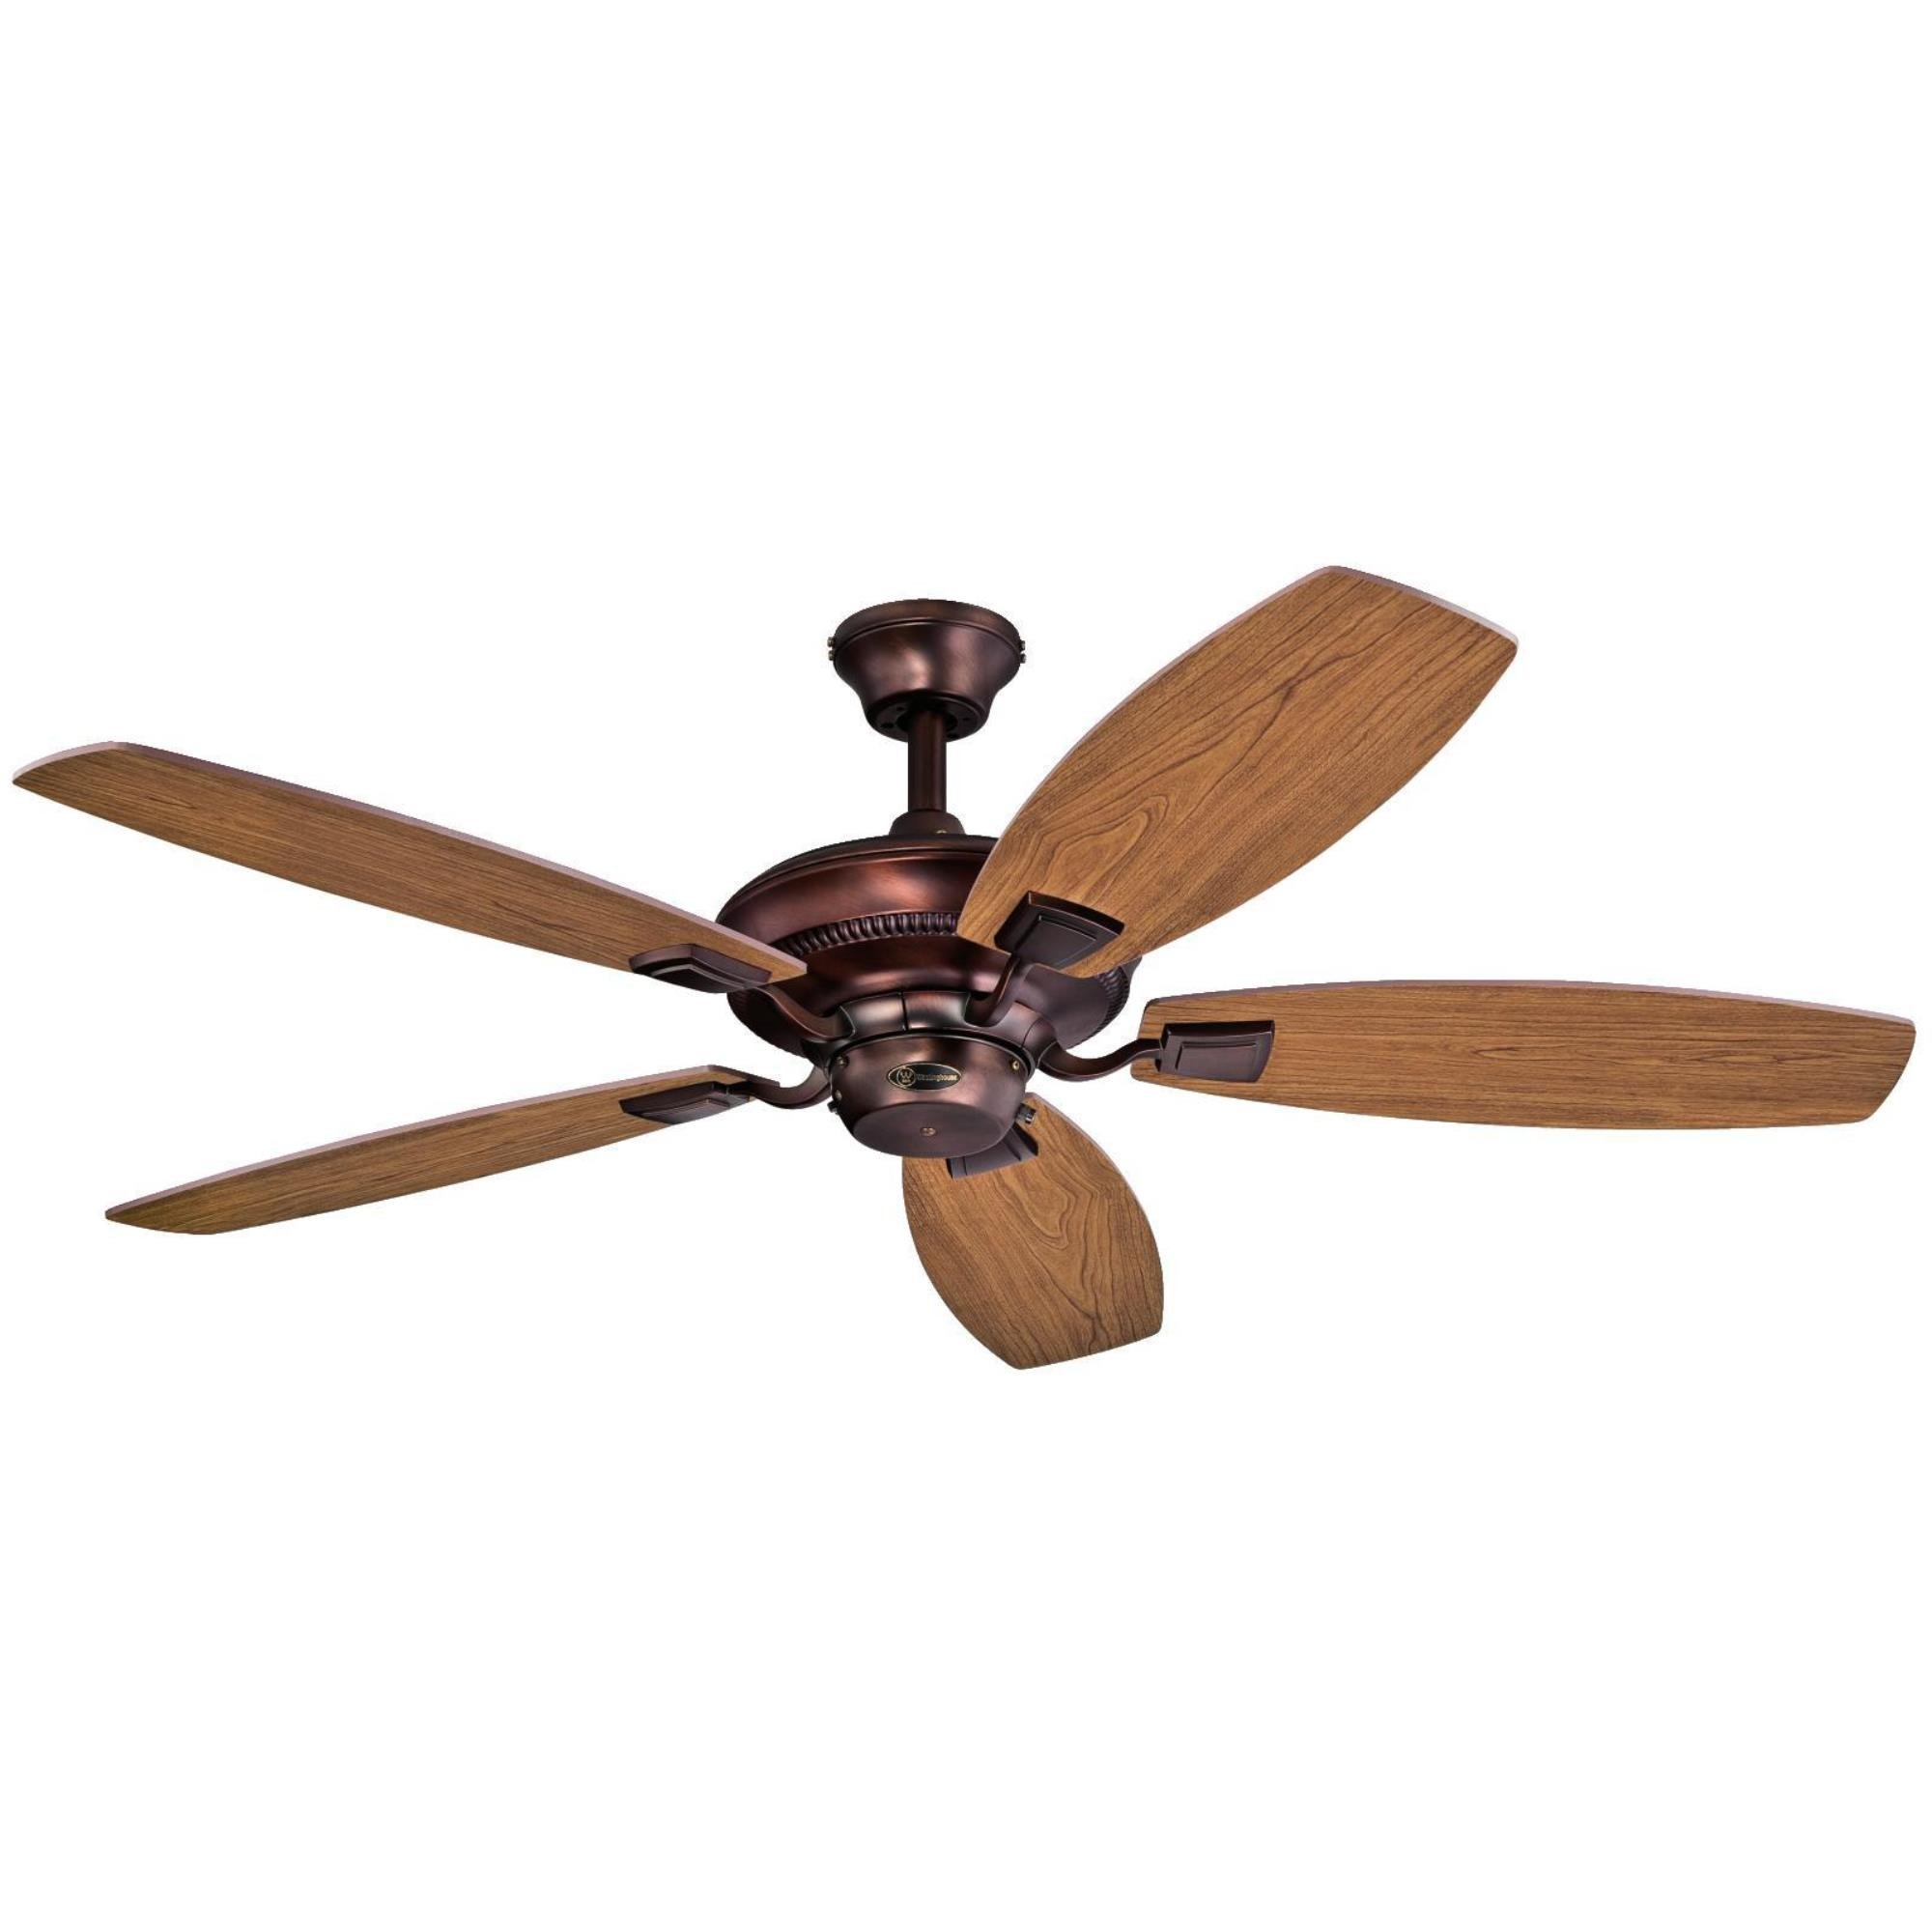 Westinghouse 7203700 Aiden 52'' Reversible Five-Blade Indoor Ceiling Fan, Oil Brushed Bronze by Westinghouse